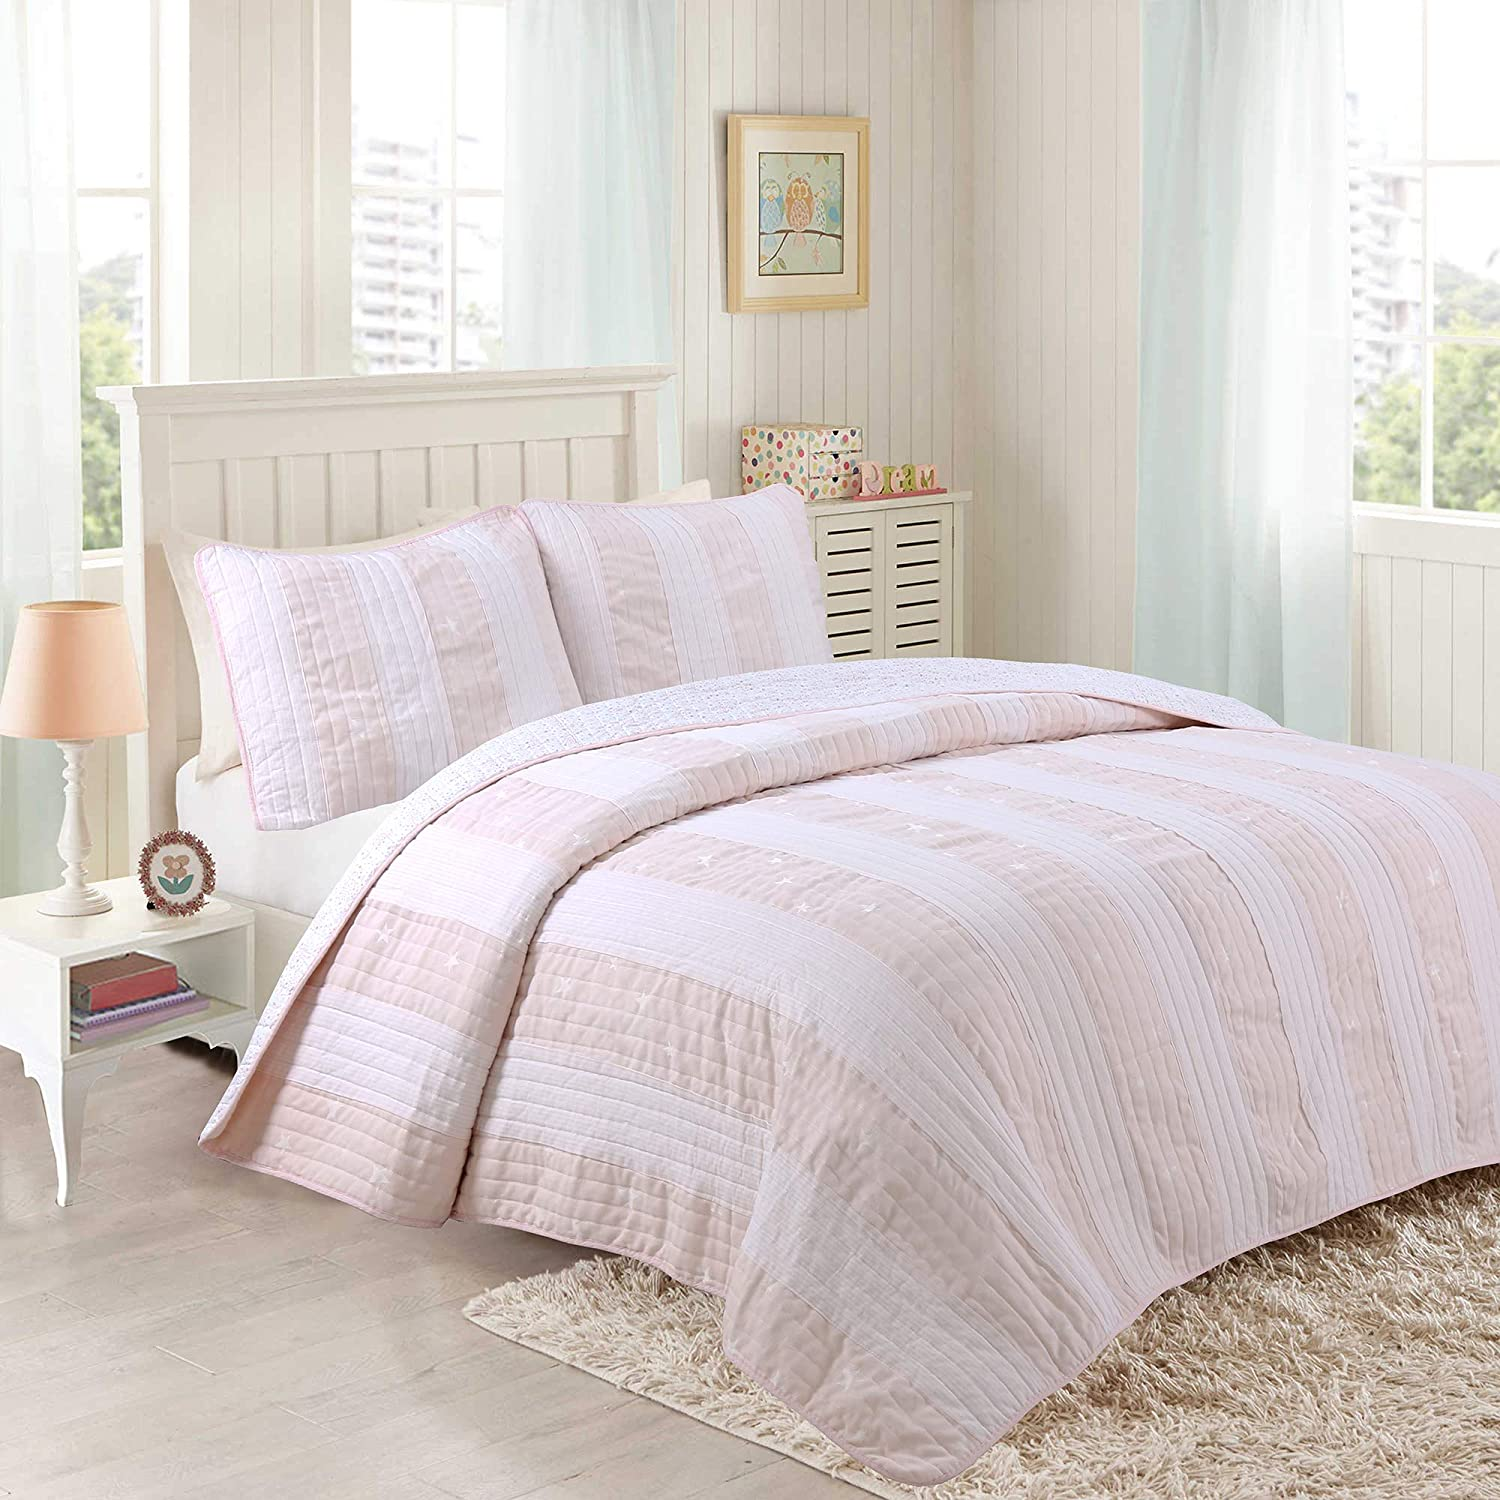 Cozy Line Home Fashions Diana Light Pink/White Stripe Star 100% Cotton  Quilt Bedding Set, Reversible Coverlet Bedspread,Gifts for Her Girl Women  (Pink ...